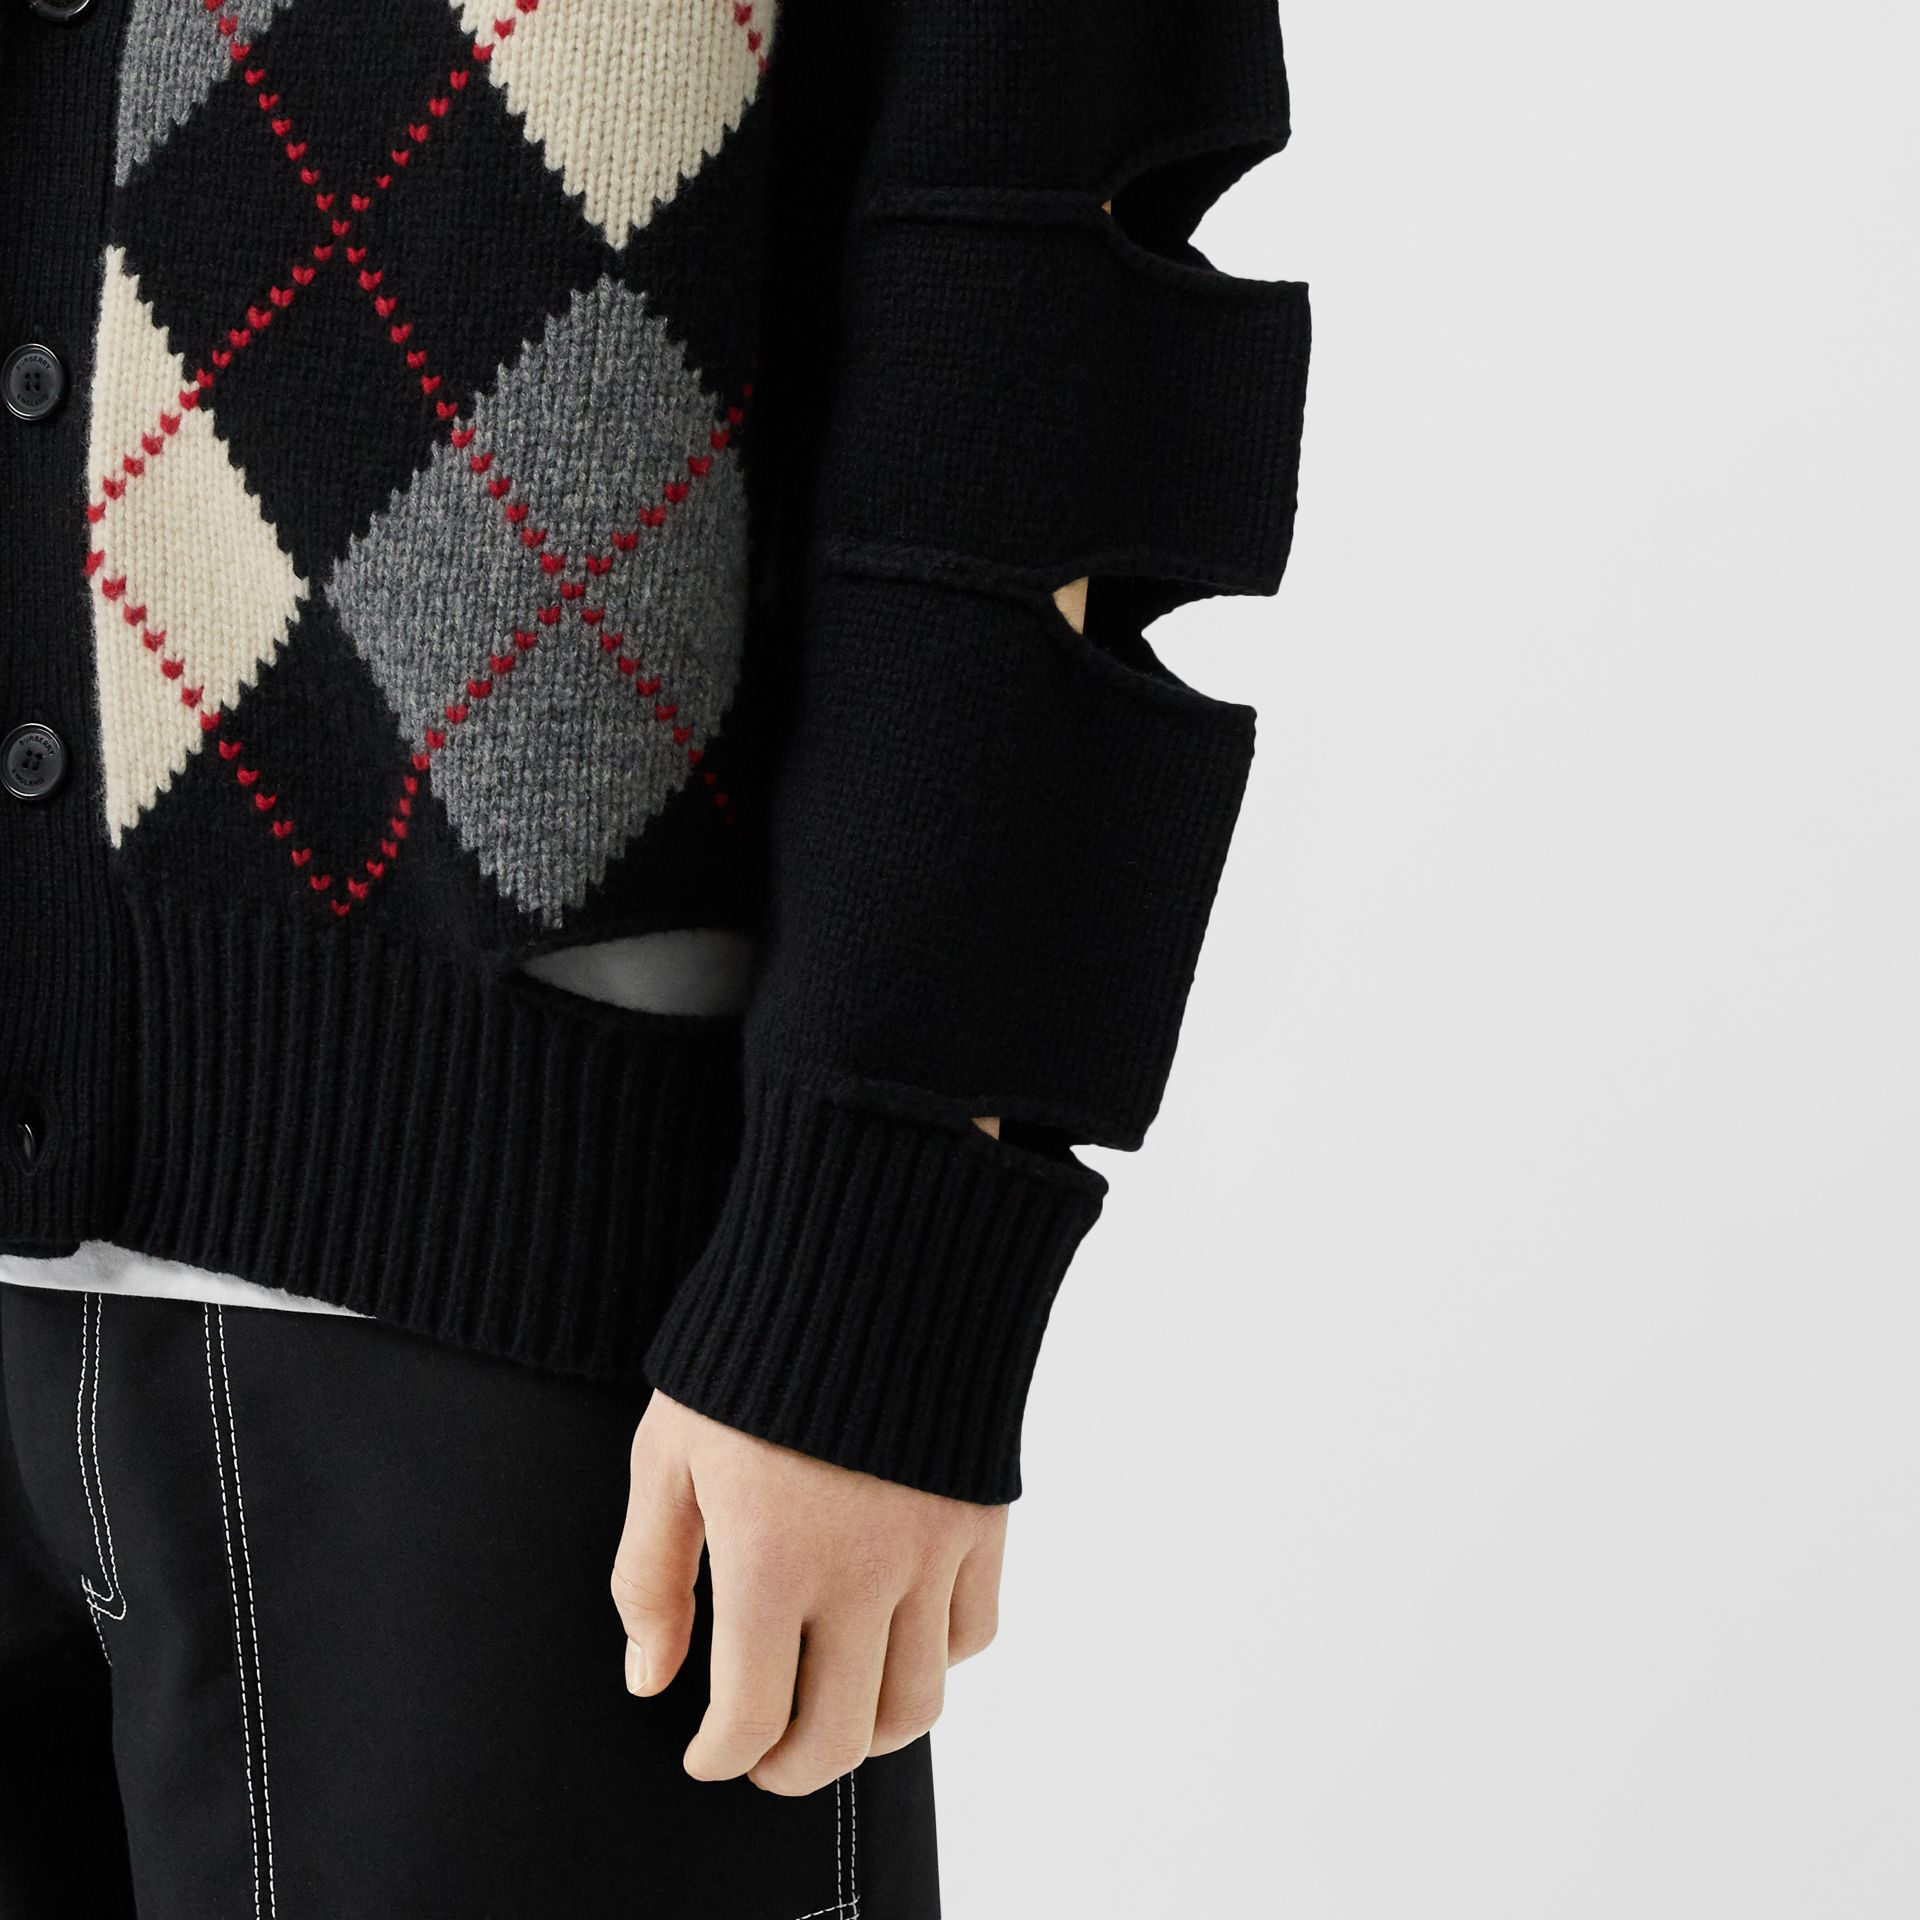 Cut-out Detail Merino Wool Cashmere Cardigan in Black - Men | Burberry Hong Kong S.A.R - gallery image 4